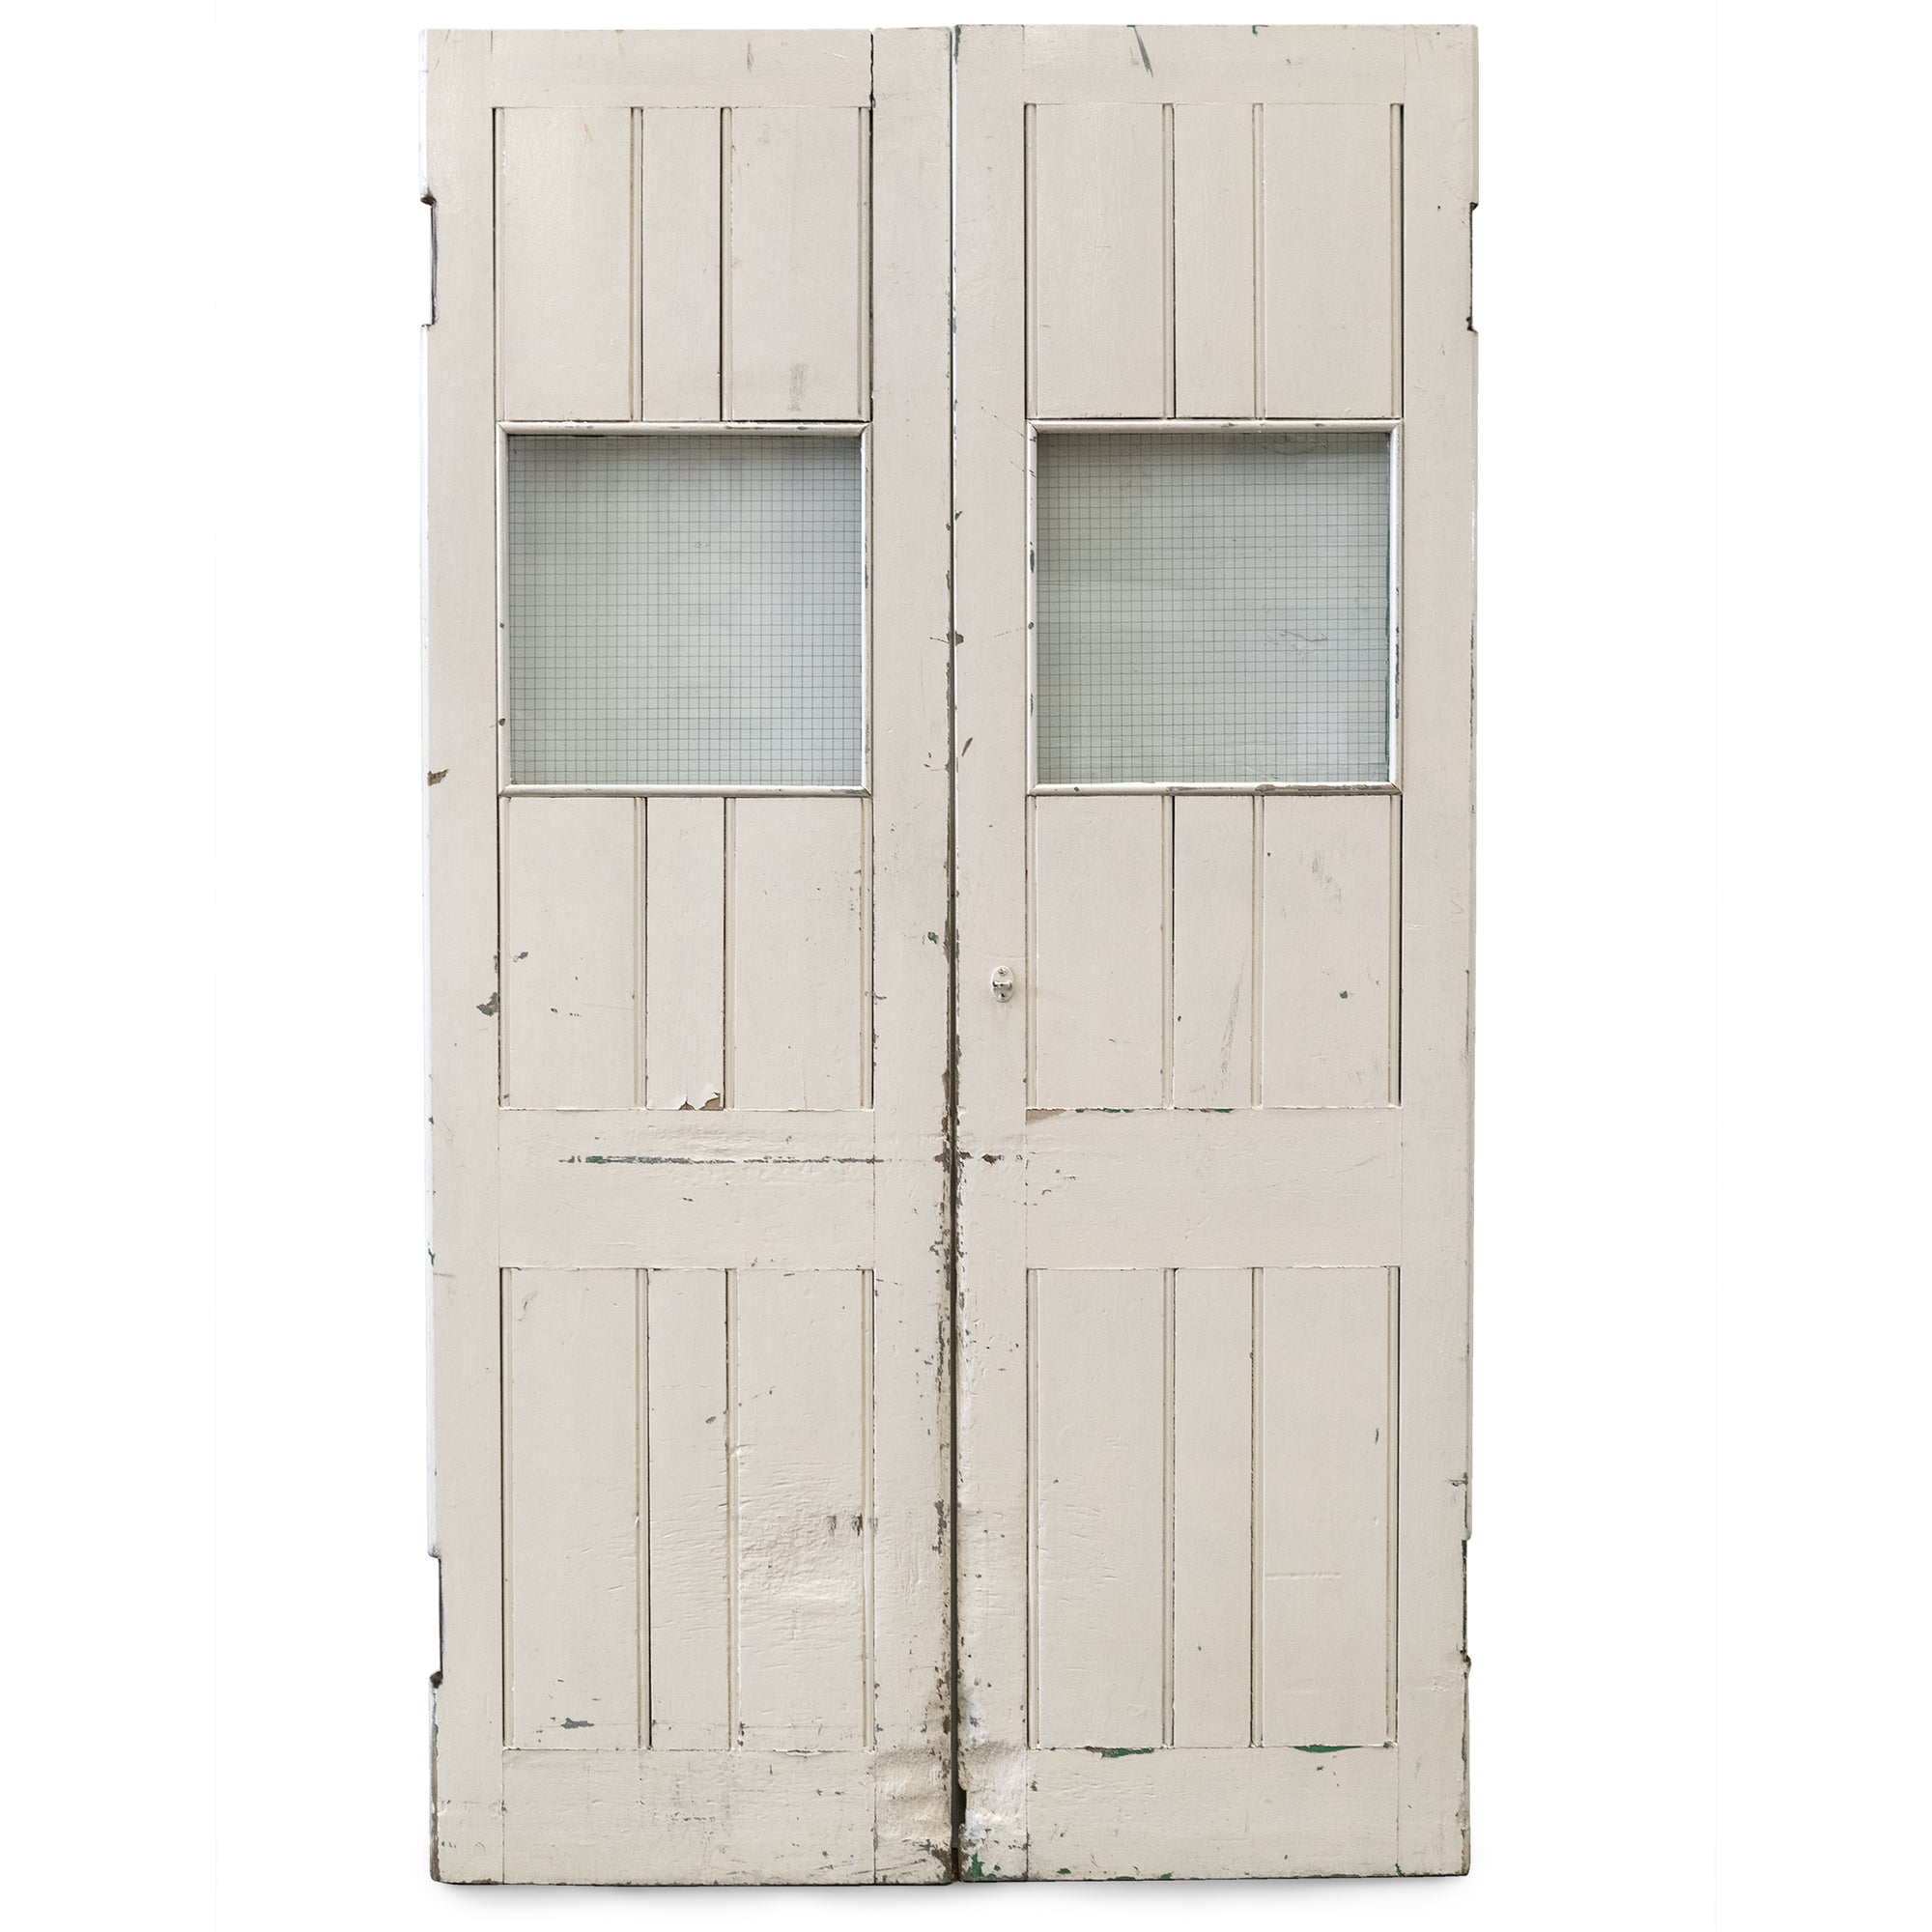 Reclaimed Glazed Emergency Exit Warehouse Doors 228cm x 128cm | The Architectural Forum